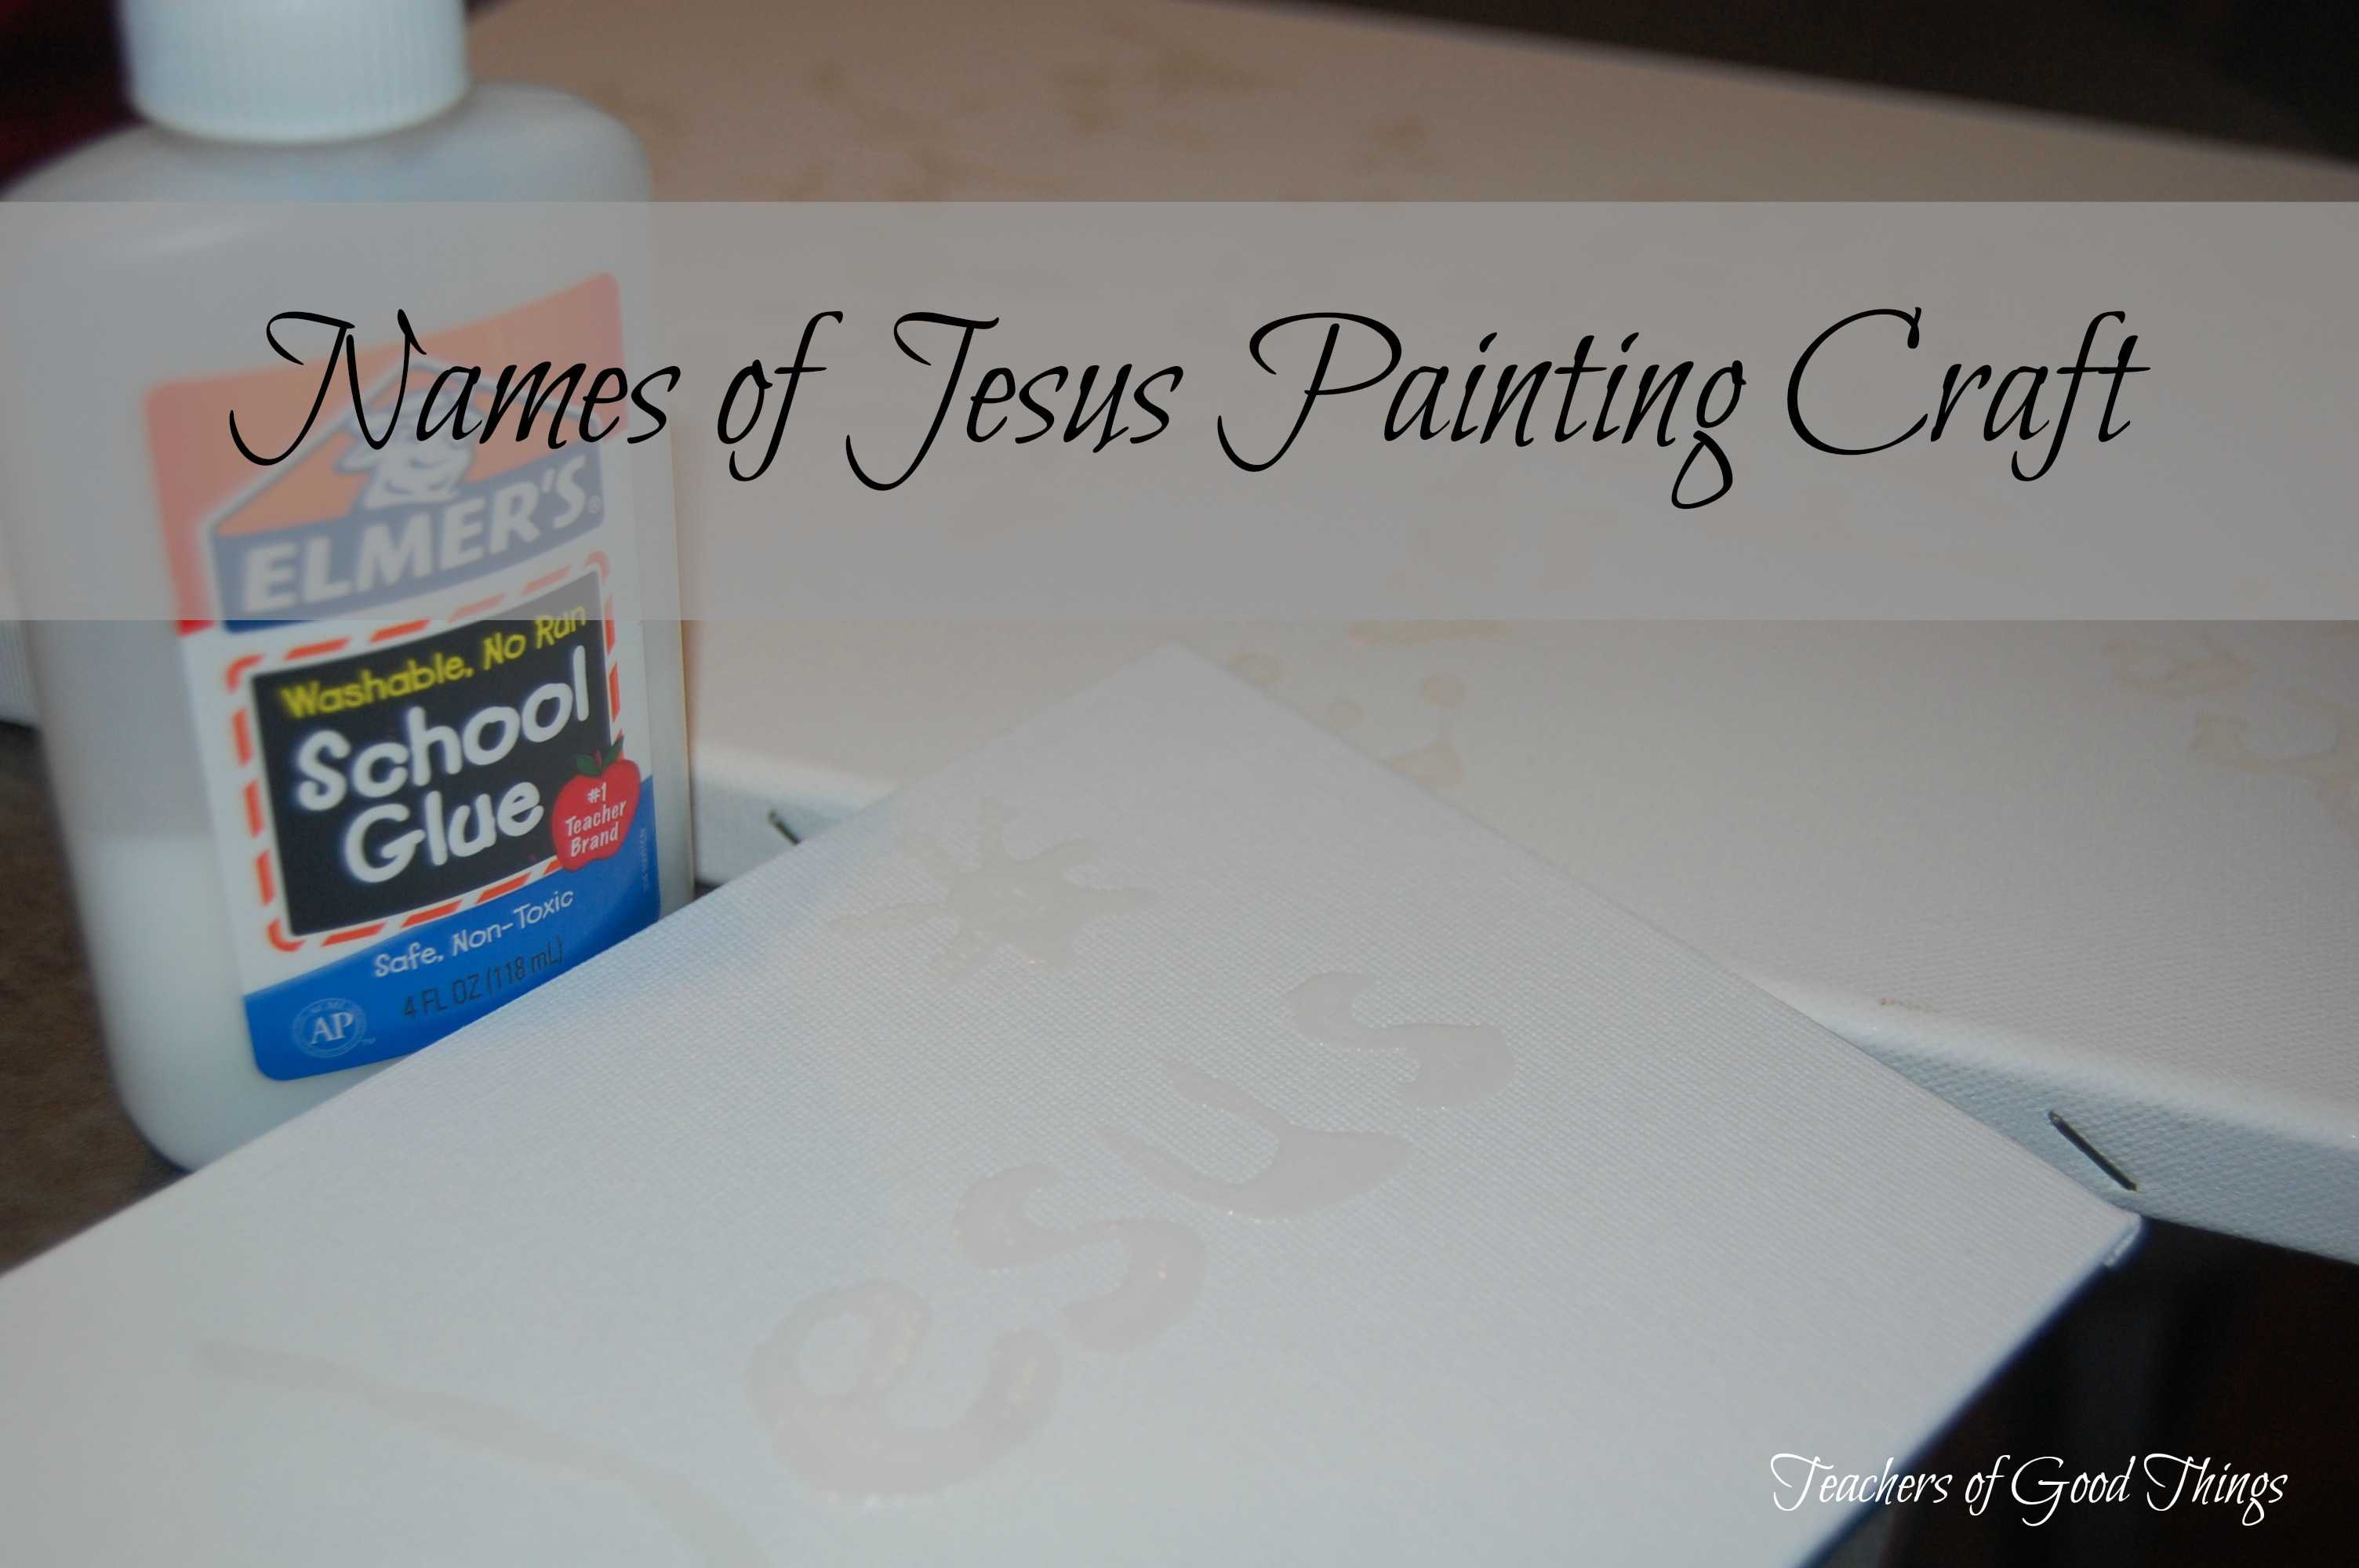 Names of Jesus Painting Craft